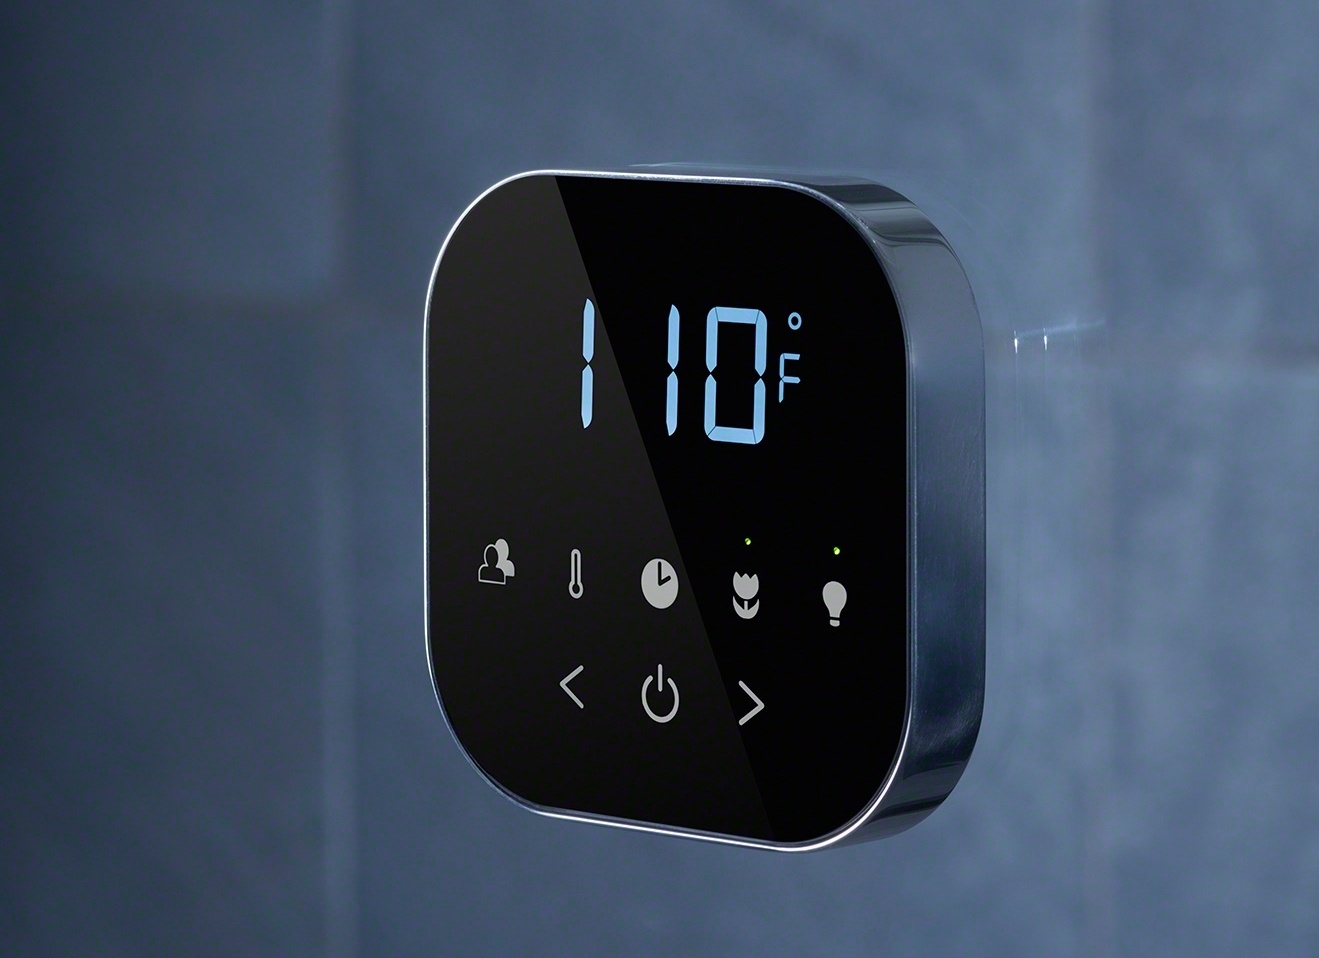 The AirTempo control features a smart, easy-to-read LED display that activates automatically as your hand approaches.